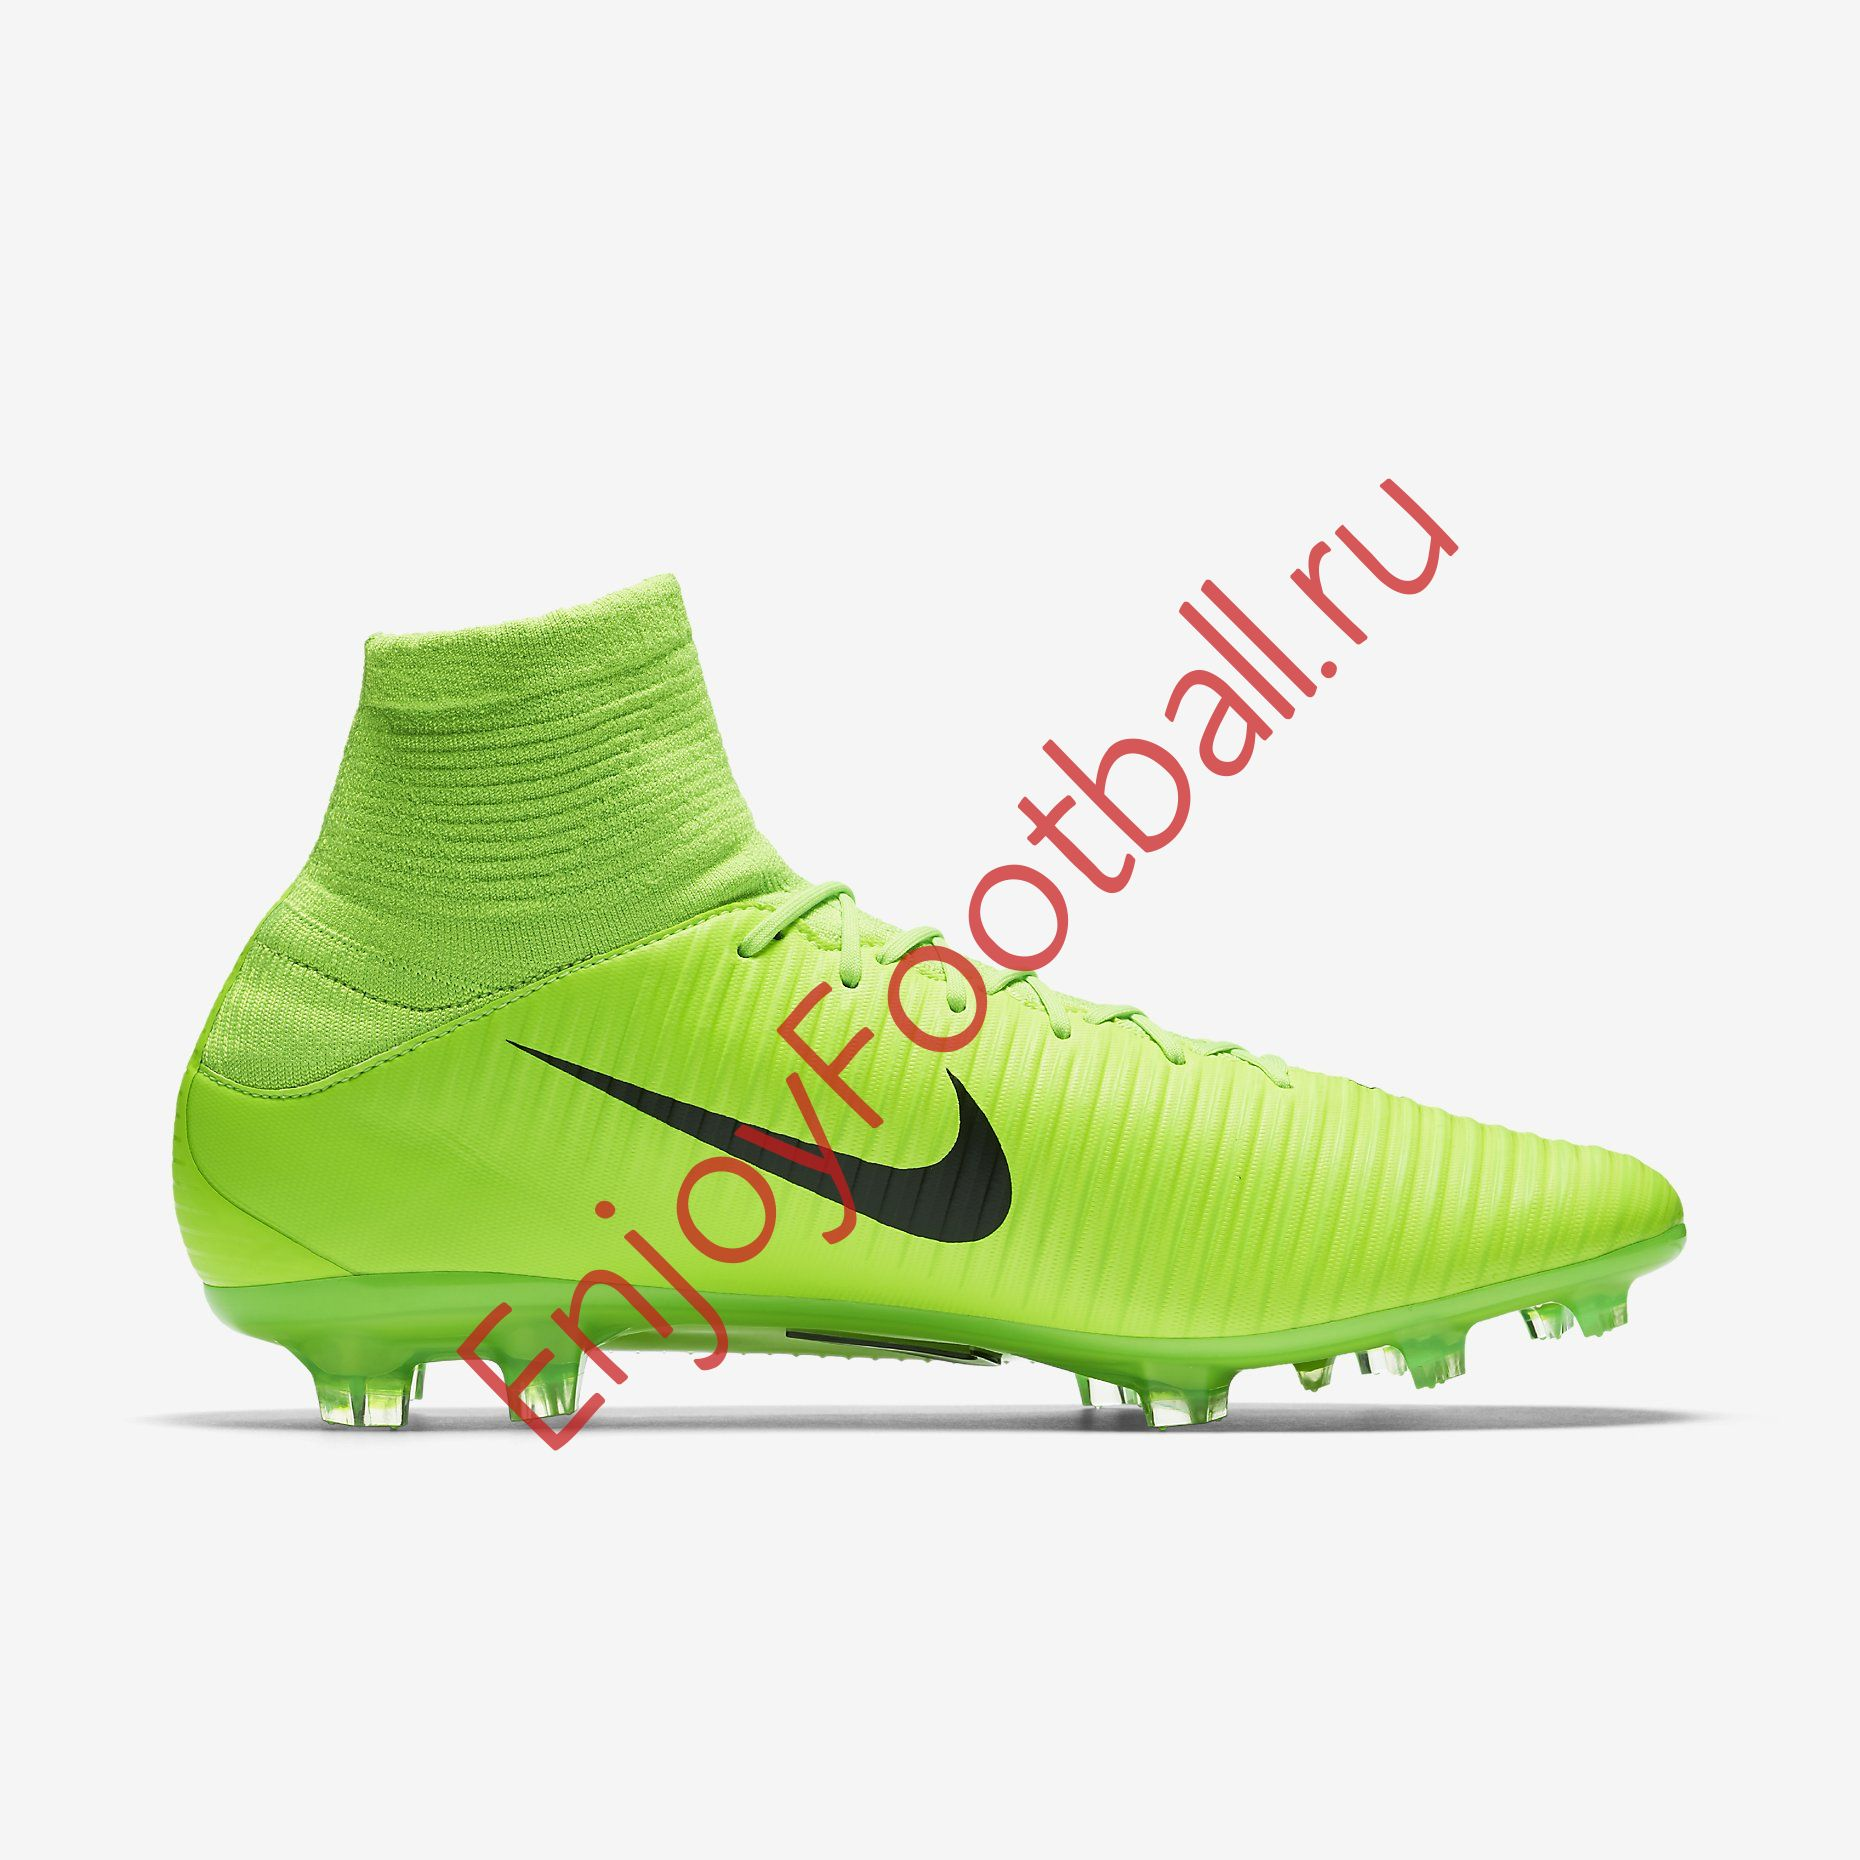 lowest price e516f e81e4 ... Бутсы NIKE MERCURIAL VELOCE III FG 831961-303 ...